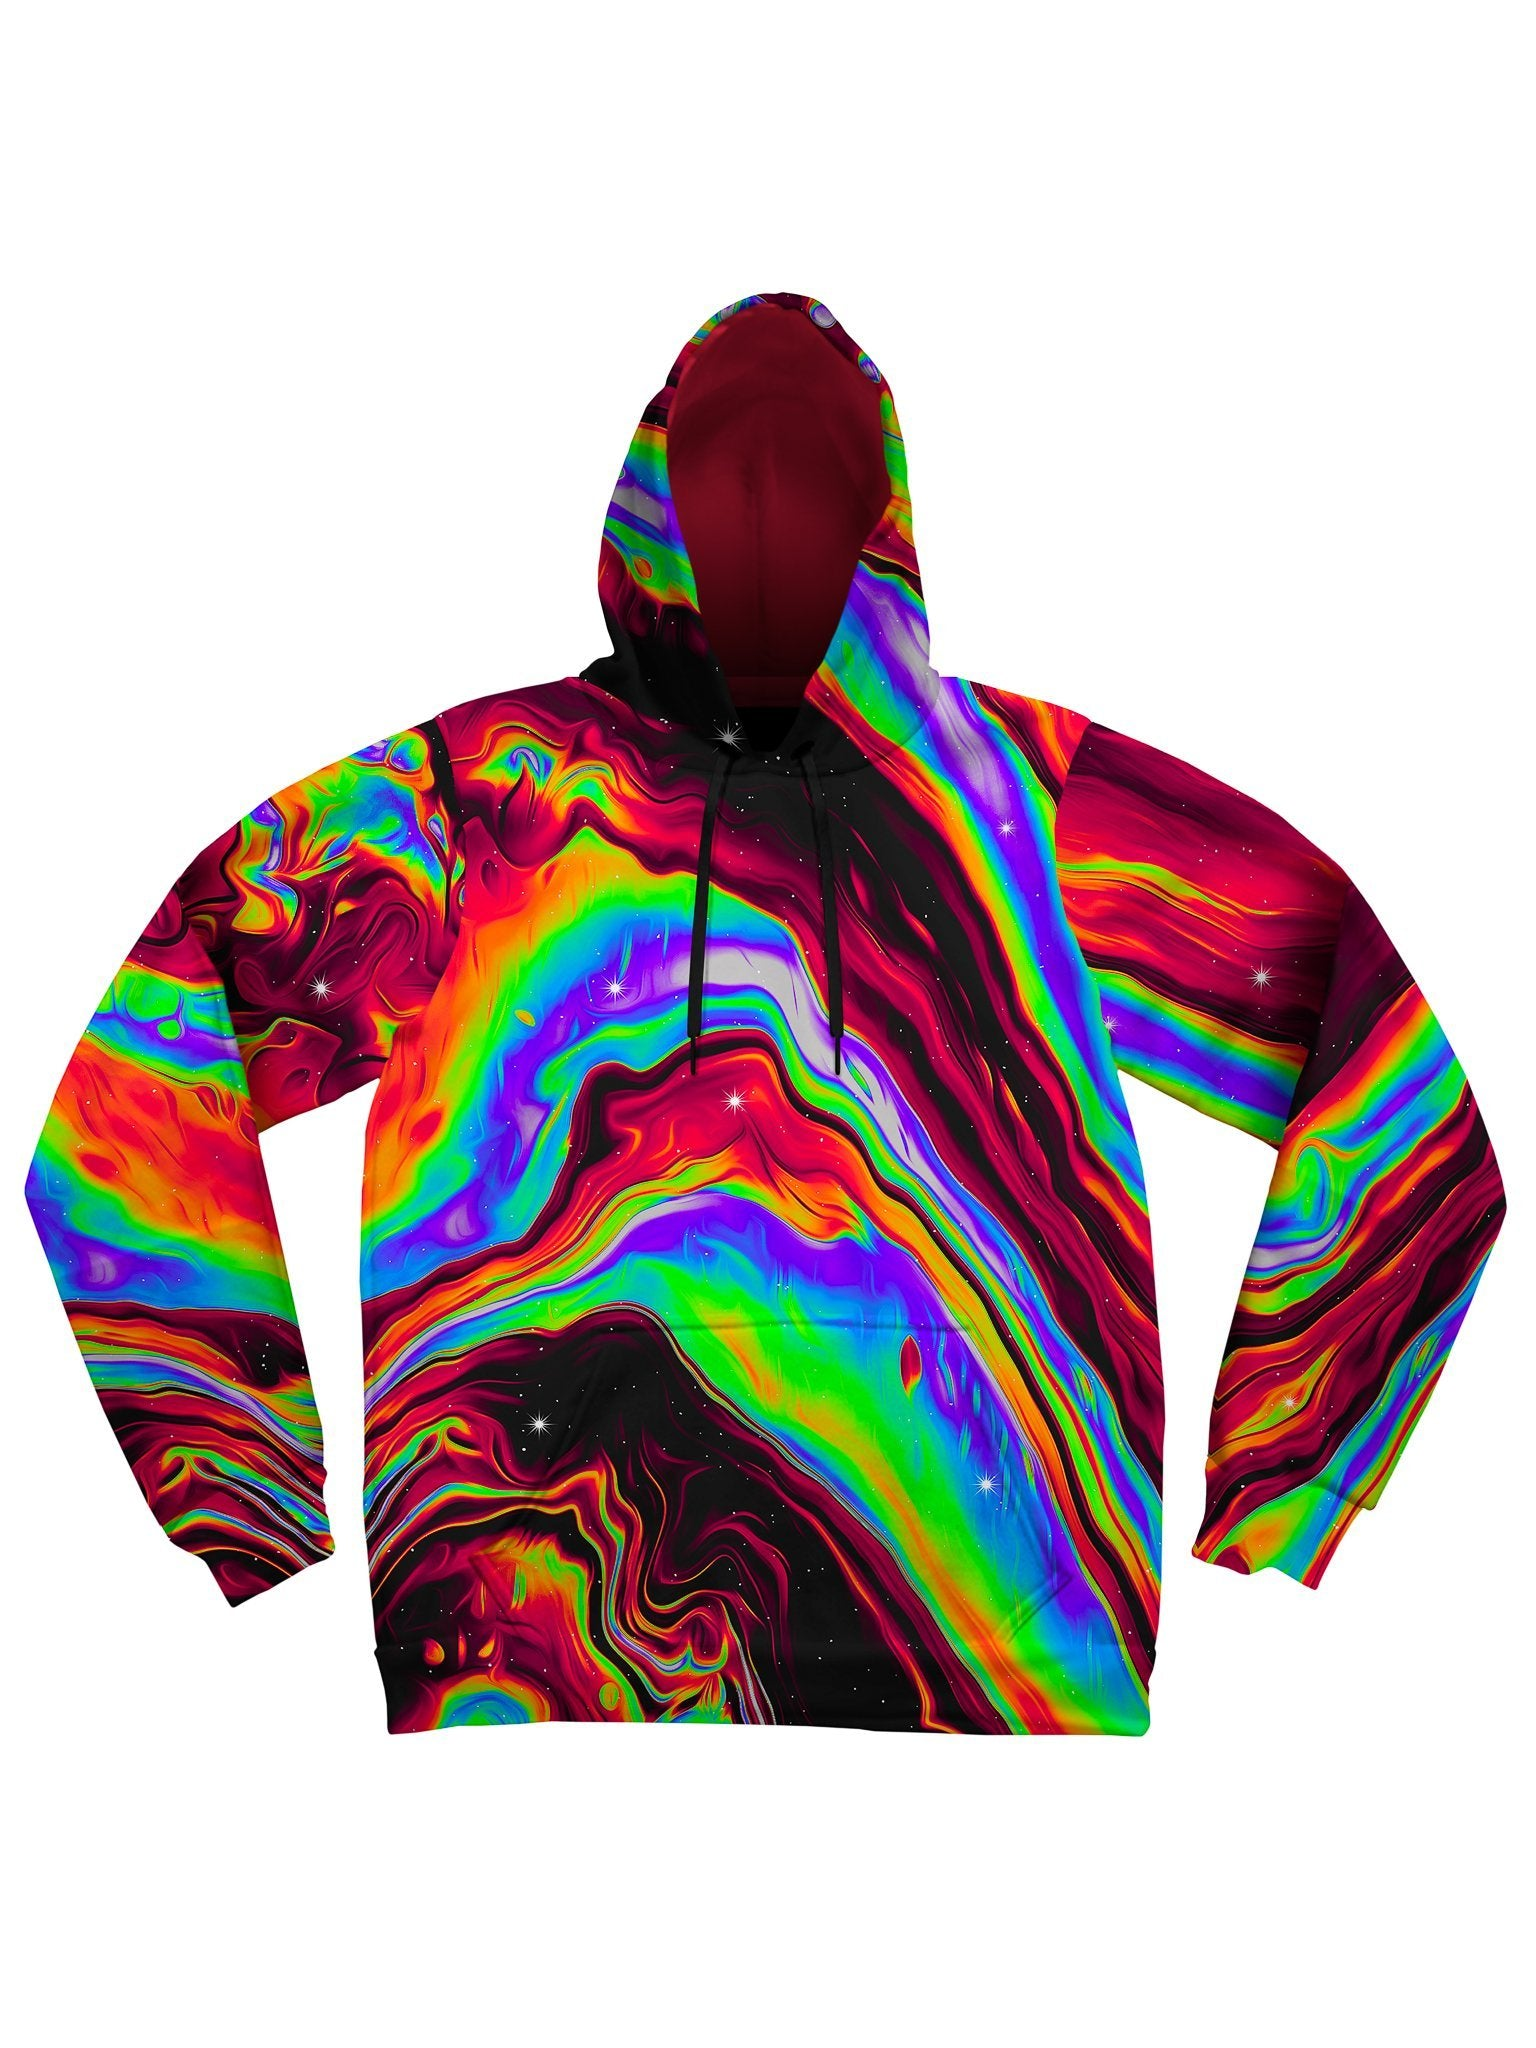 Neon Venus Fly Trap Unisex Hoodie Pullover Hoodies Electro Threads